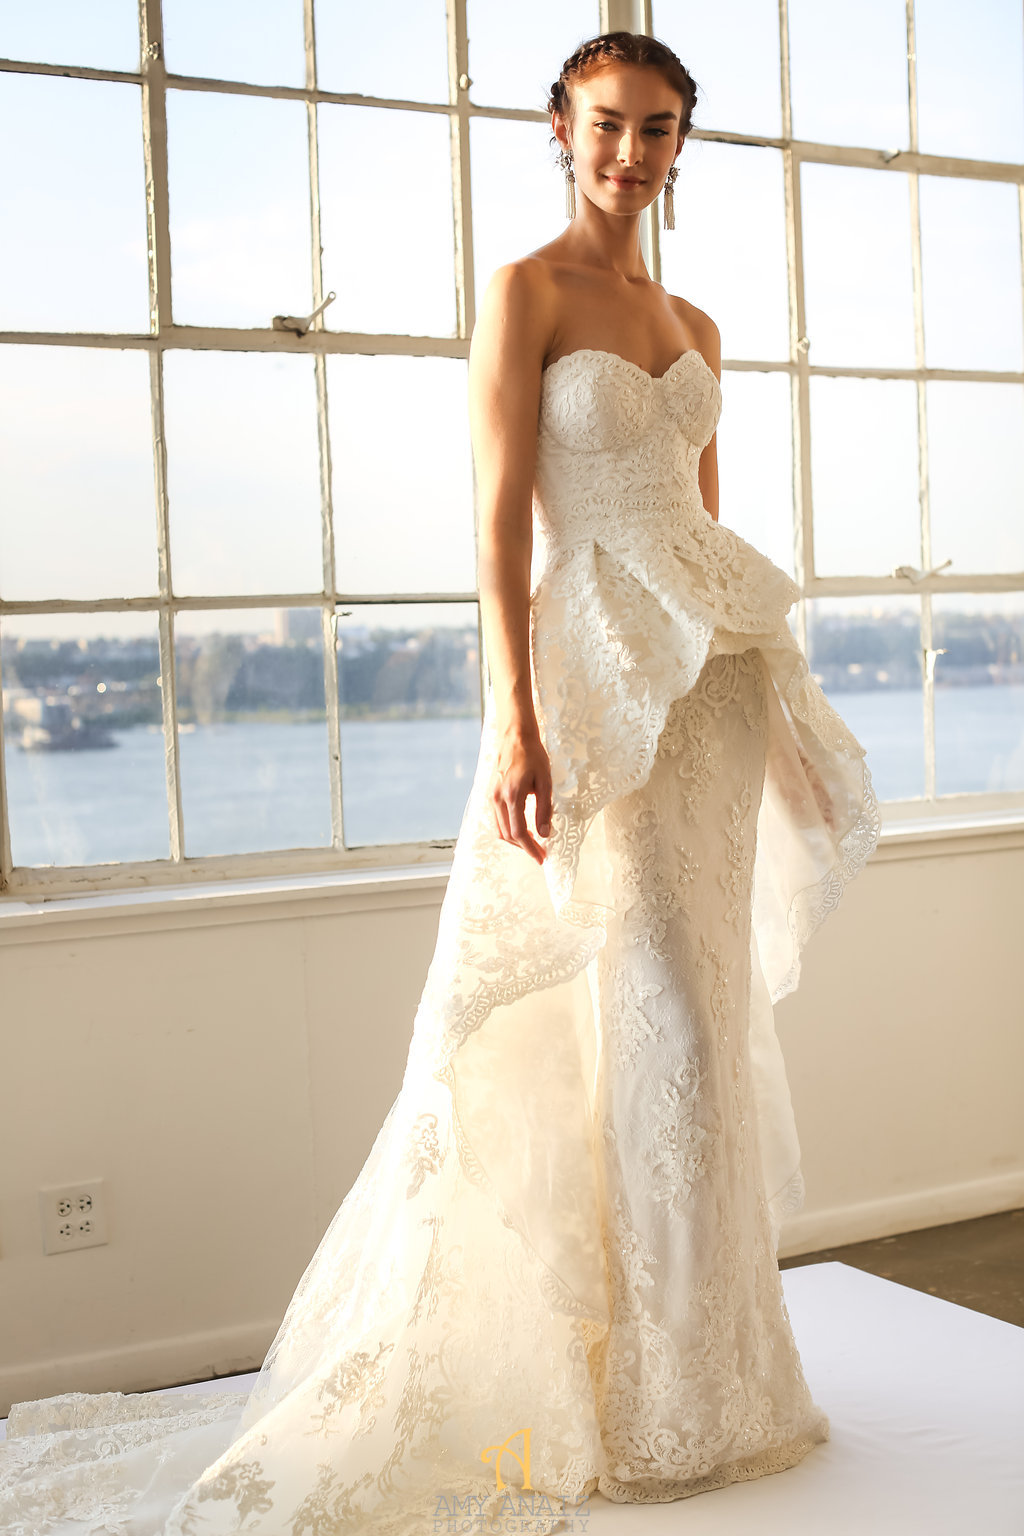 Dress by Marchesa Image by Amy Anaiz Photography